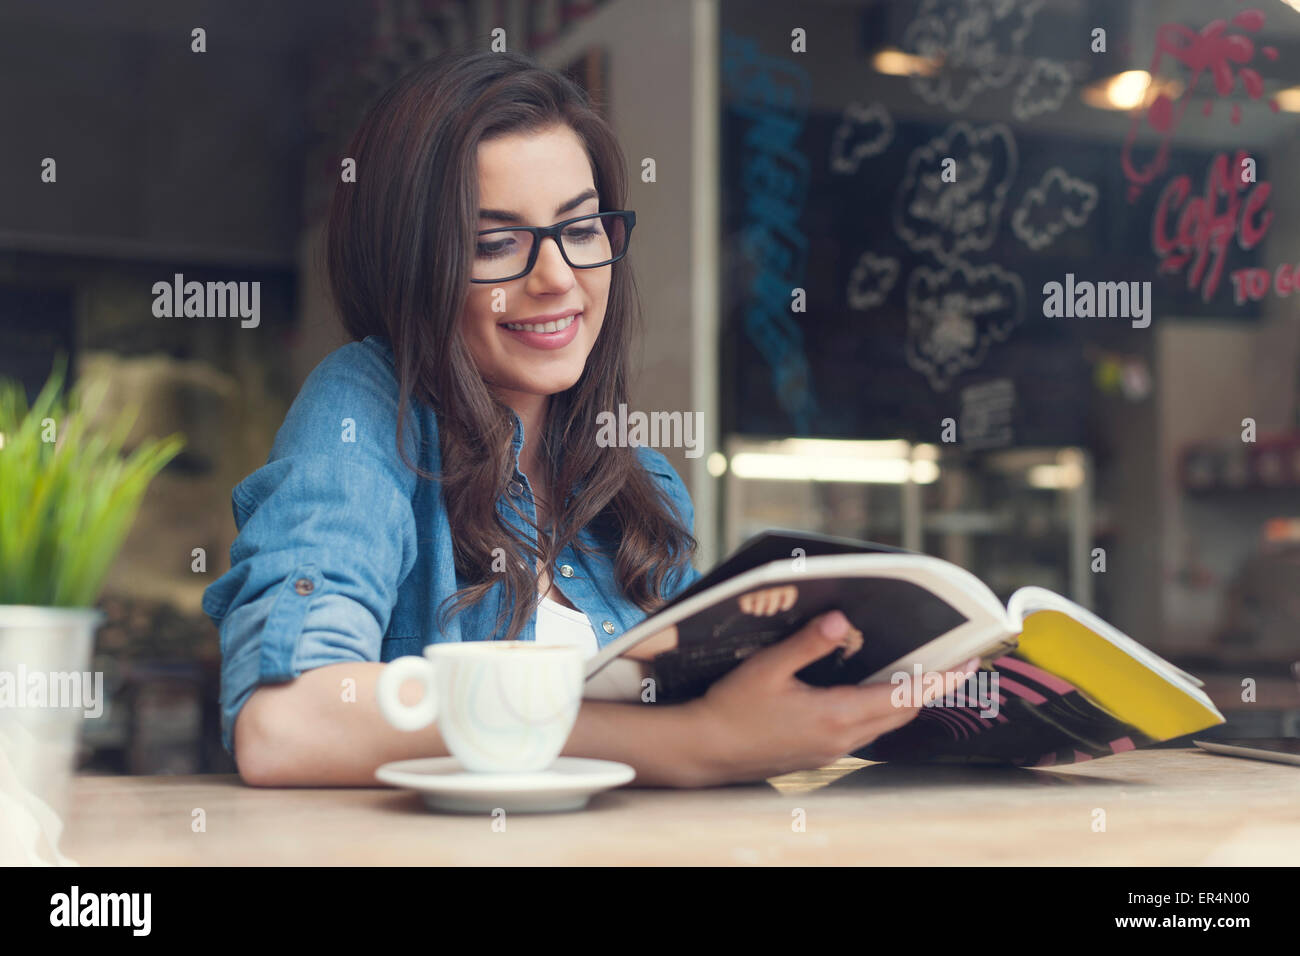 Smiling woman reading newspaper at cafe. Krakow, Poland - Stock Image